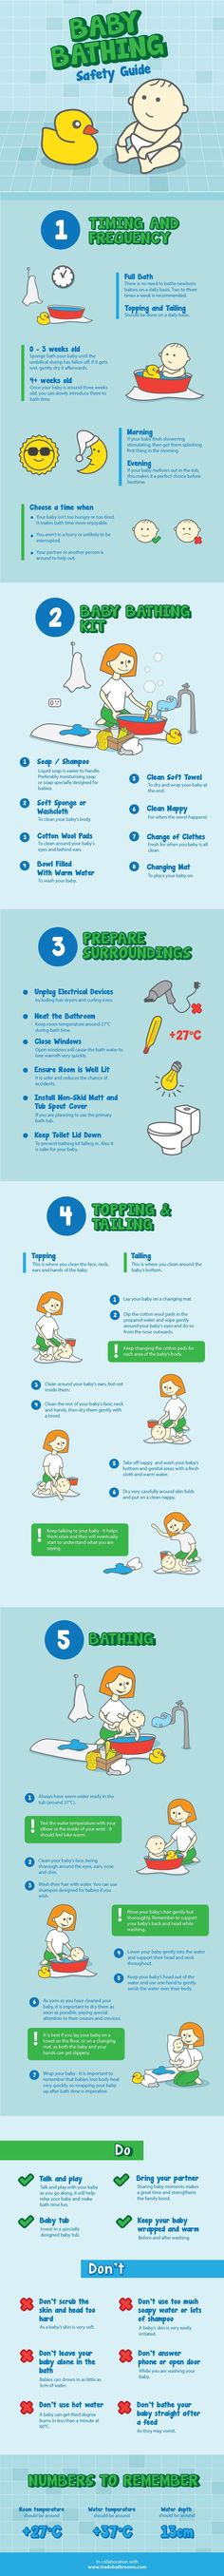 Infographic: Baby Bathing Safety Guide This infographic is a fantastic resource for all parents on baby bath time. There are some important things to bear in mind to make sure your baby is safe at all times. Trade Bathrooms has put together this guide. Great print out for the bathroom as a reminder before each bath.